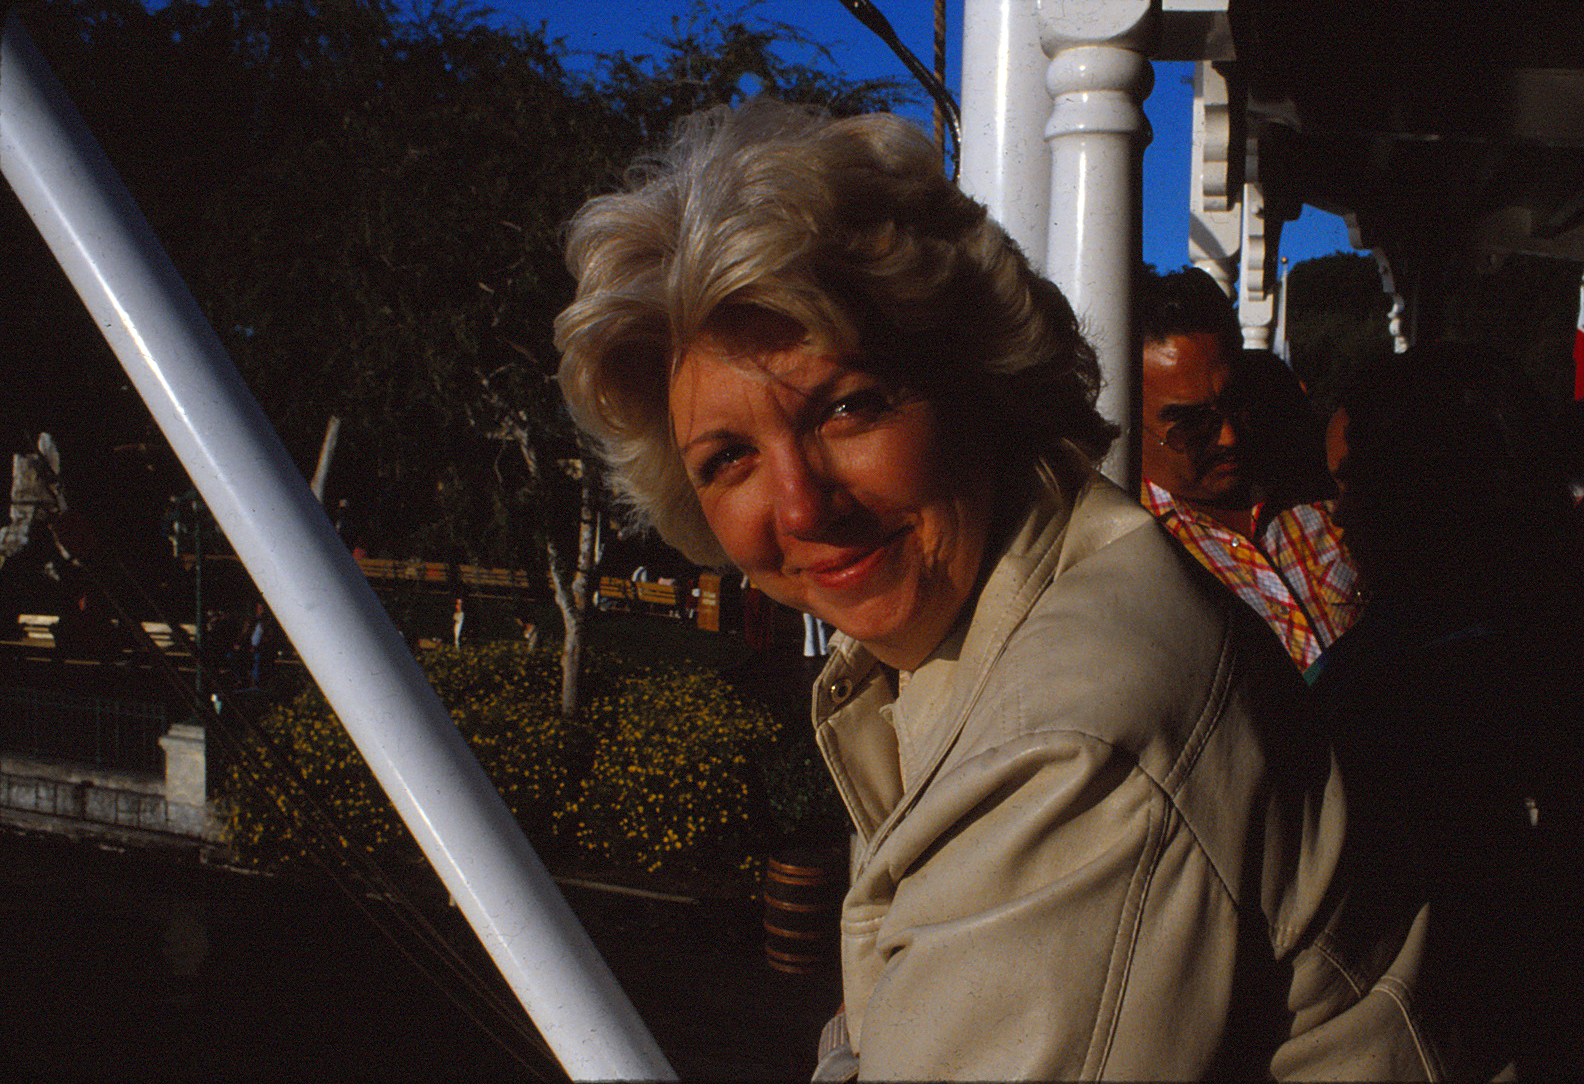 My grandma Joan at Disneyland in the late 1970s.